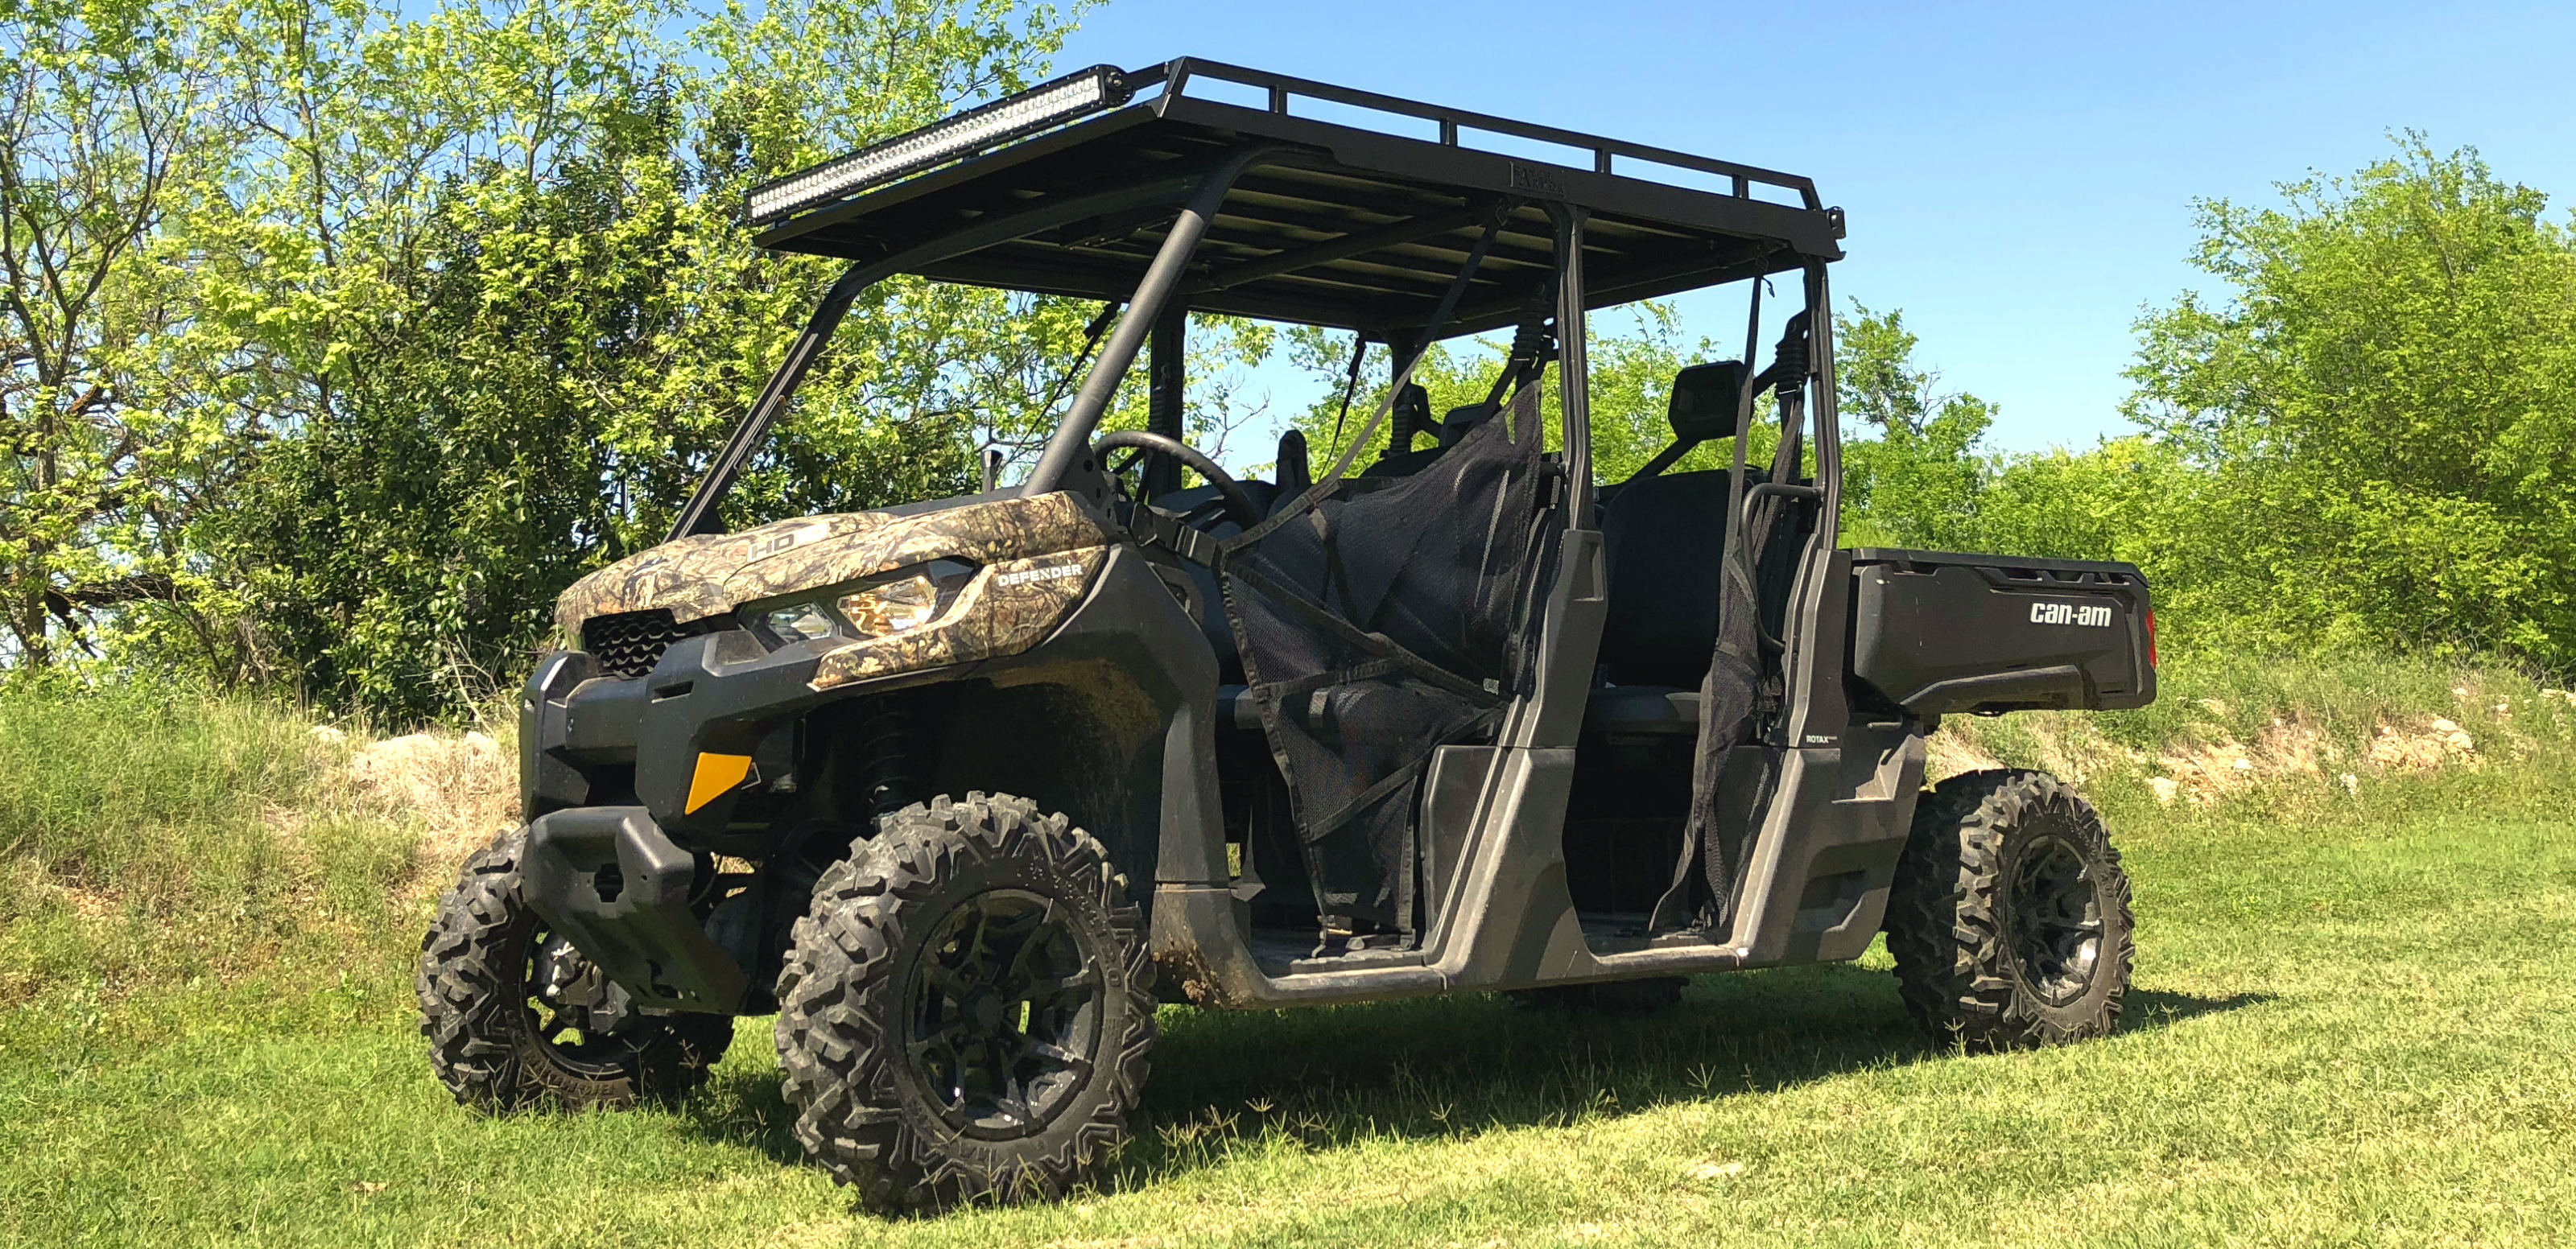 Can-am Defender Metal Aluminum Roof with Rack by Ranch Armor UTV